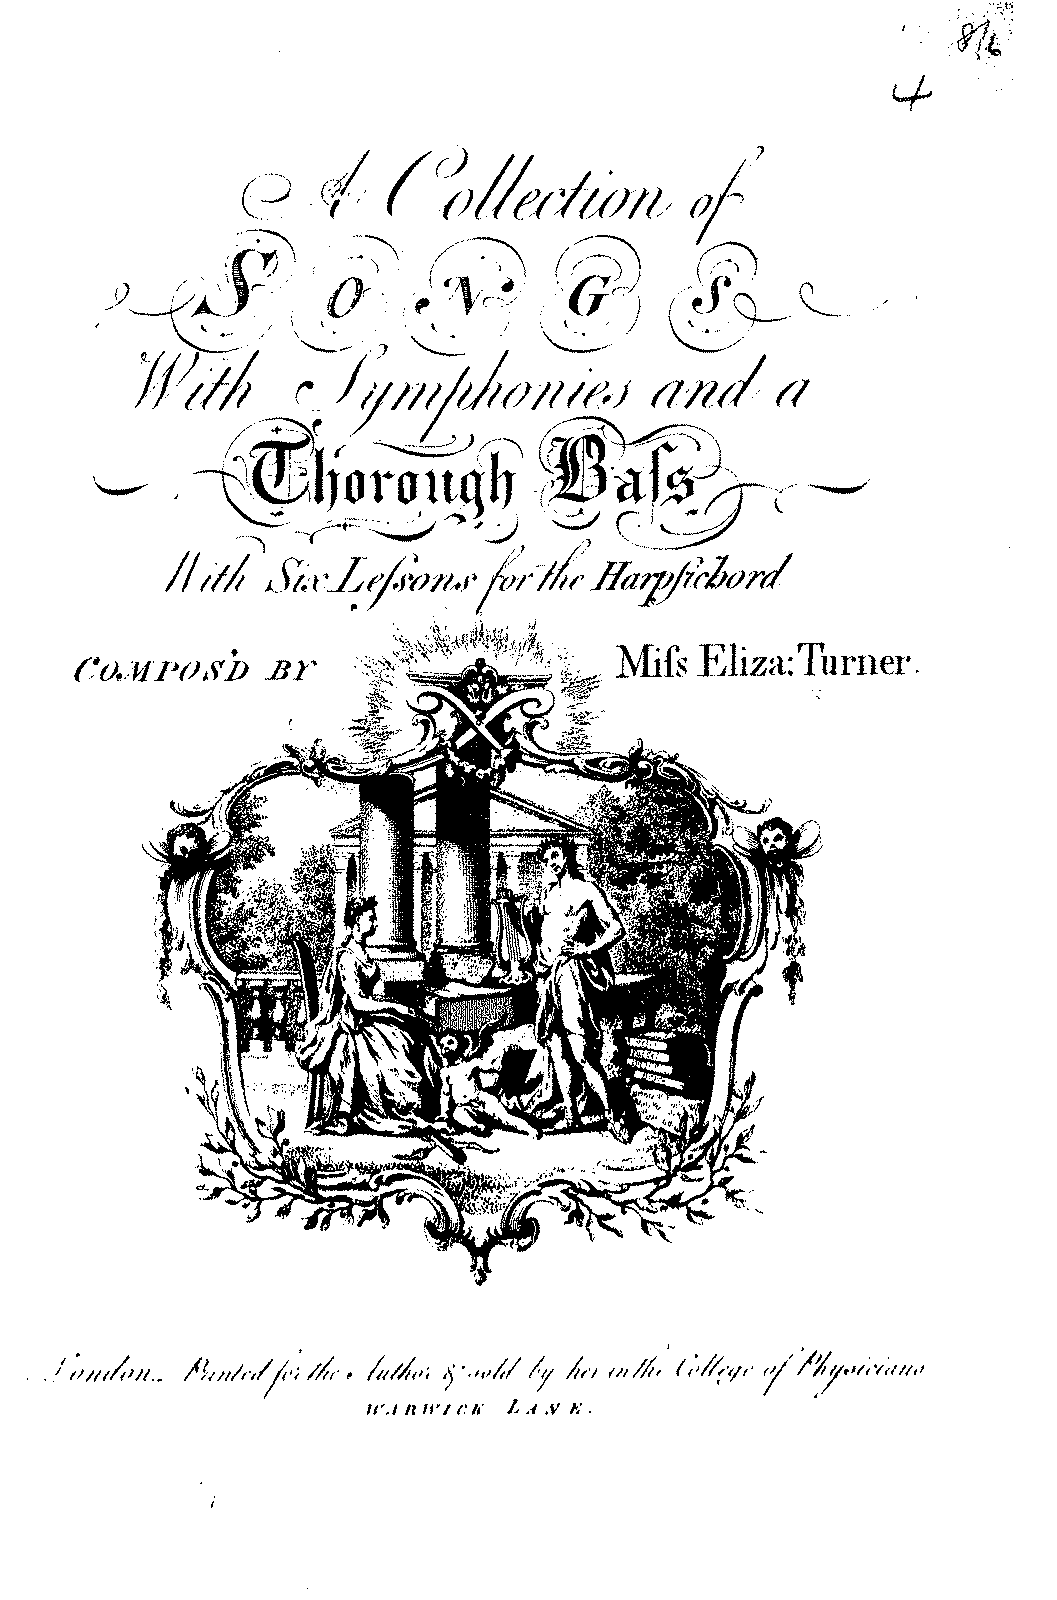 PMLP79315-Eliza Turner Collection of Songs 1756.pdf